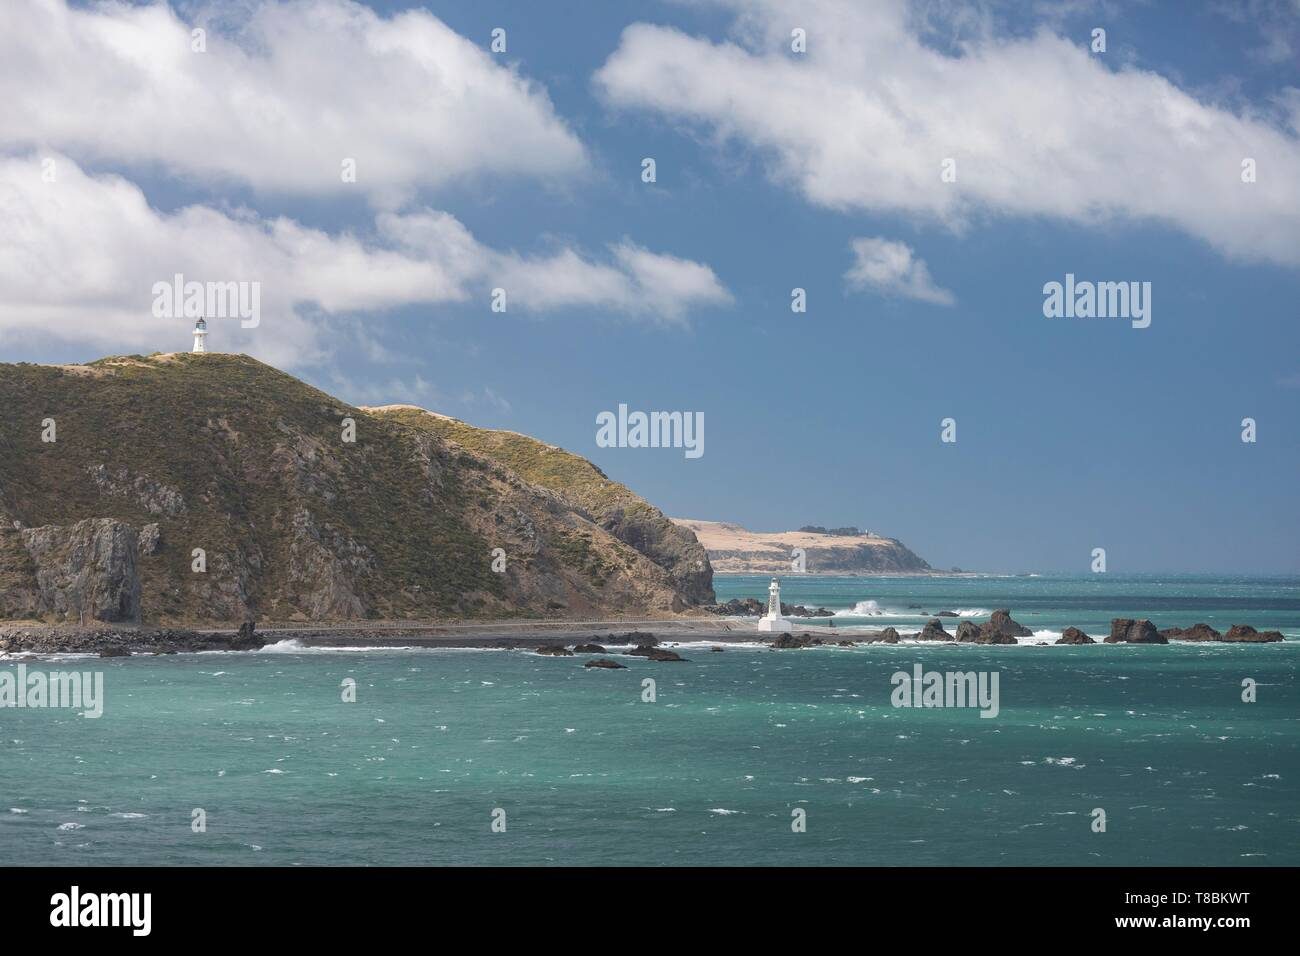 New Zealand, Cook strait between North Island and South Island, Pencarrow Head, at the entrance to Wellington Bay - Stock Image